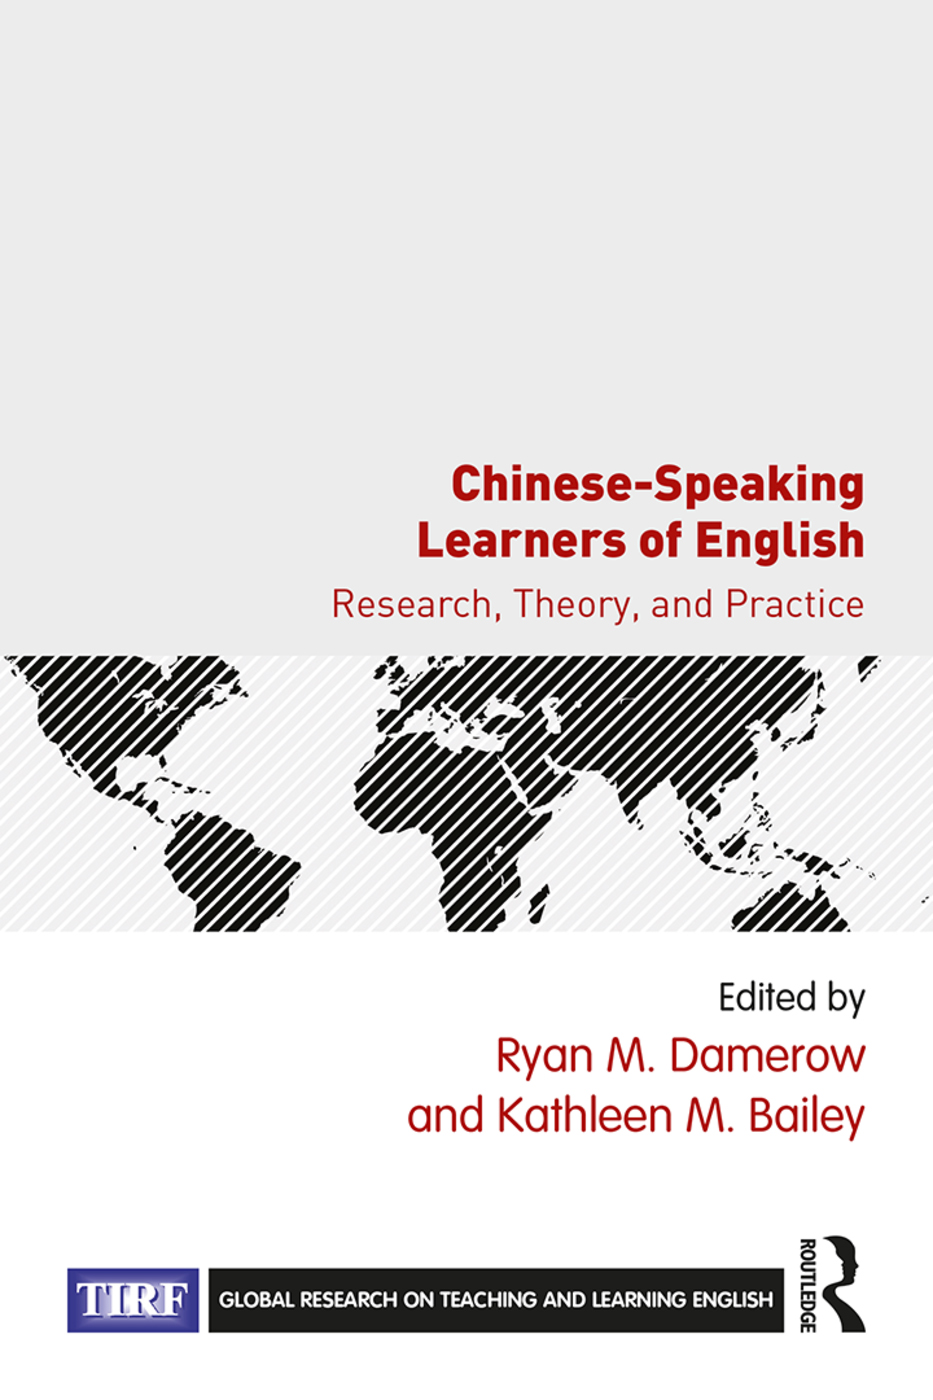 Chinese-Speaking Learners of English: Research, Theory, and Practice book cover